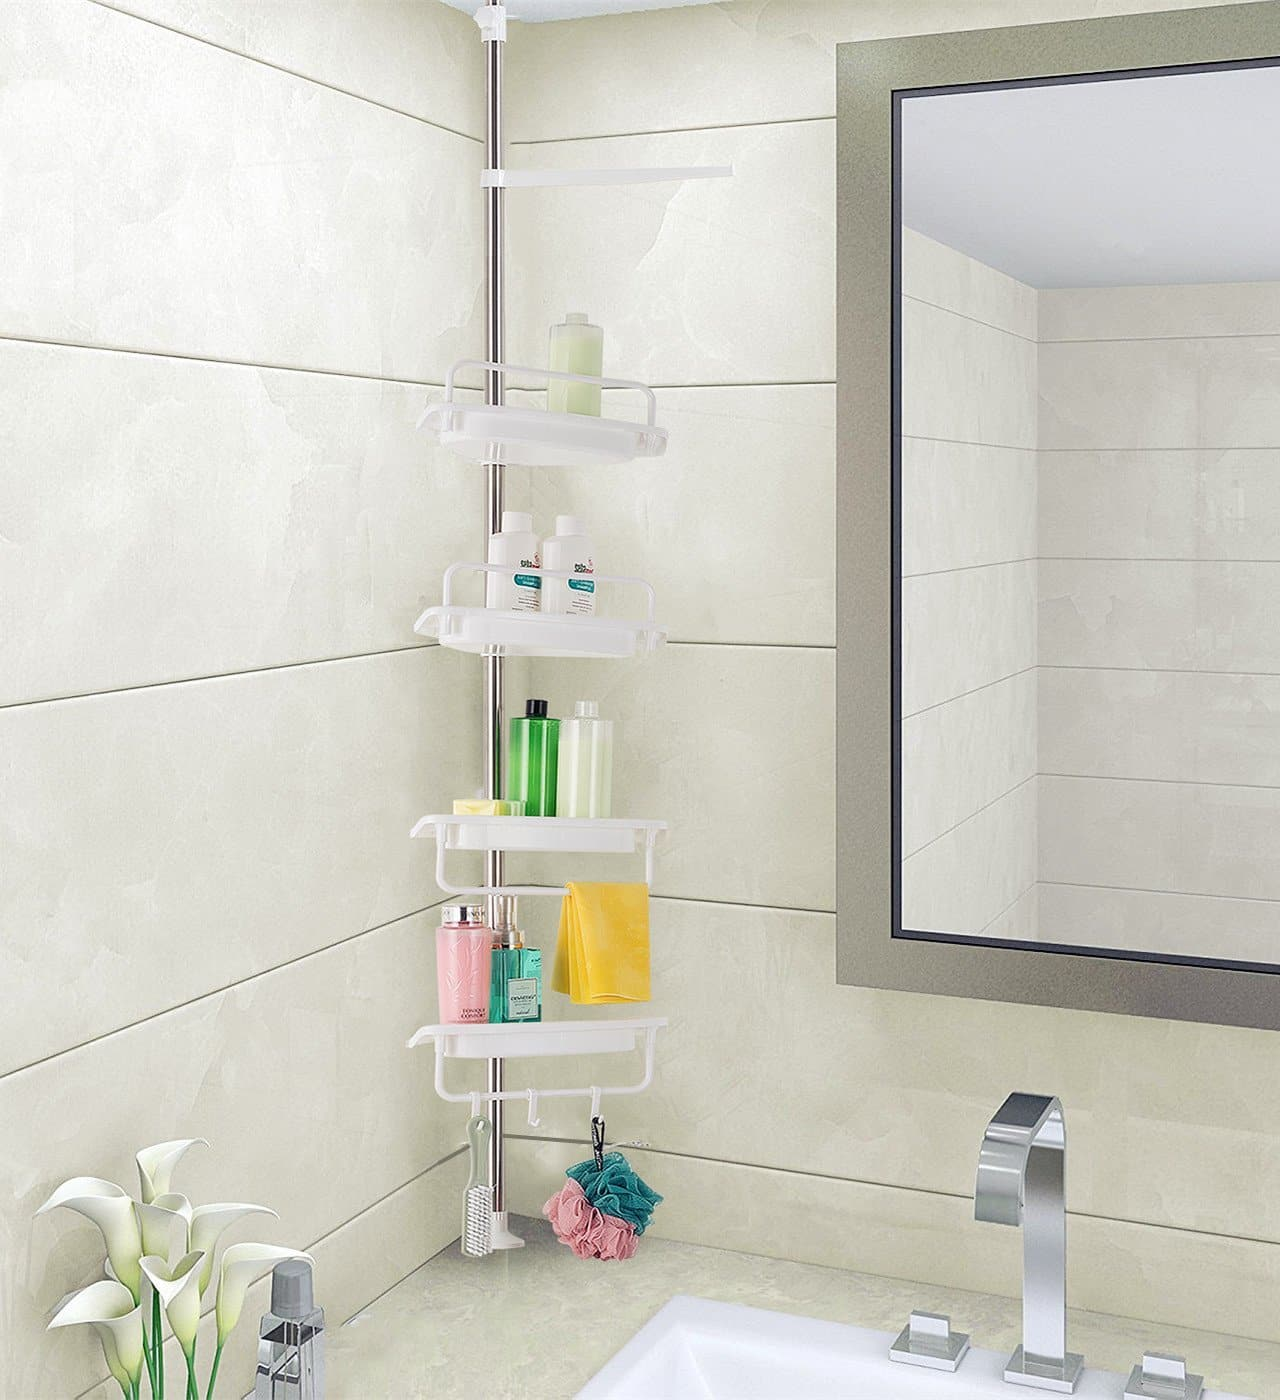 Top 10 Best Shower Caddies Reviews in 2018 | Shower Shelves